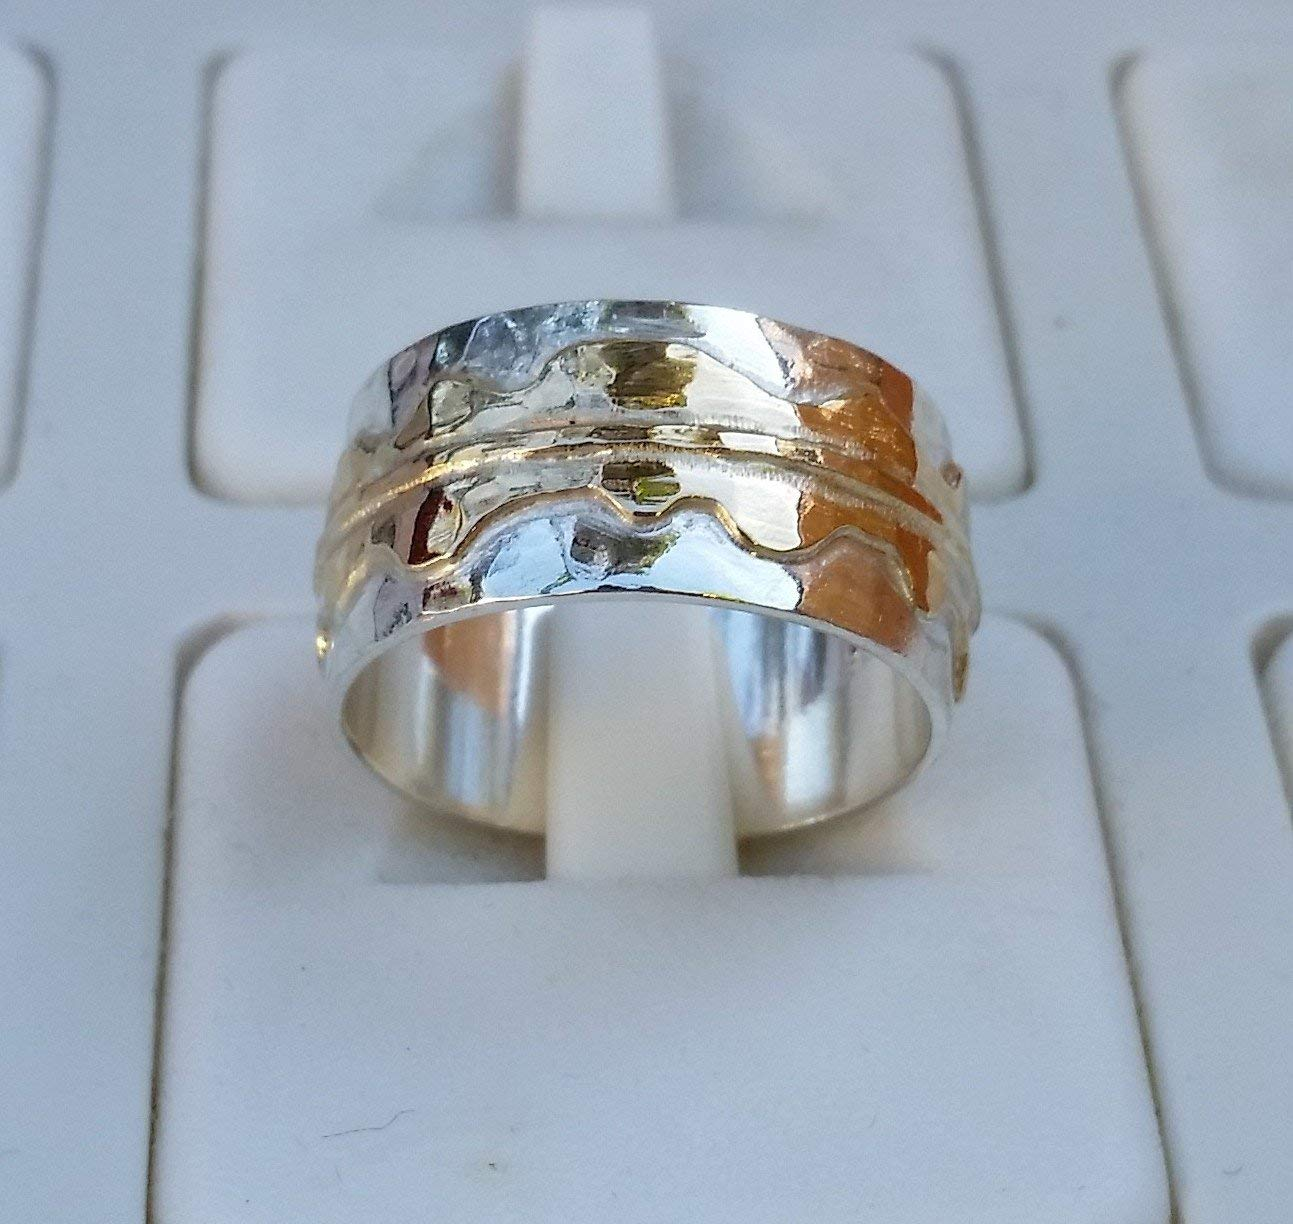 Wedding Ring Silver And Gold ,Handmade Wedding Band ,Sterling Silver Ring ,14K Gold Wedding Band ,Bridal Wedding Ring ,Hammered Wedding Band